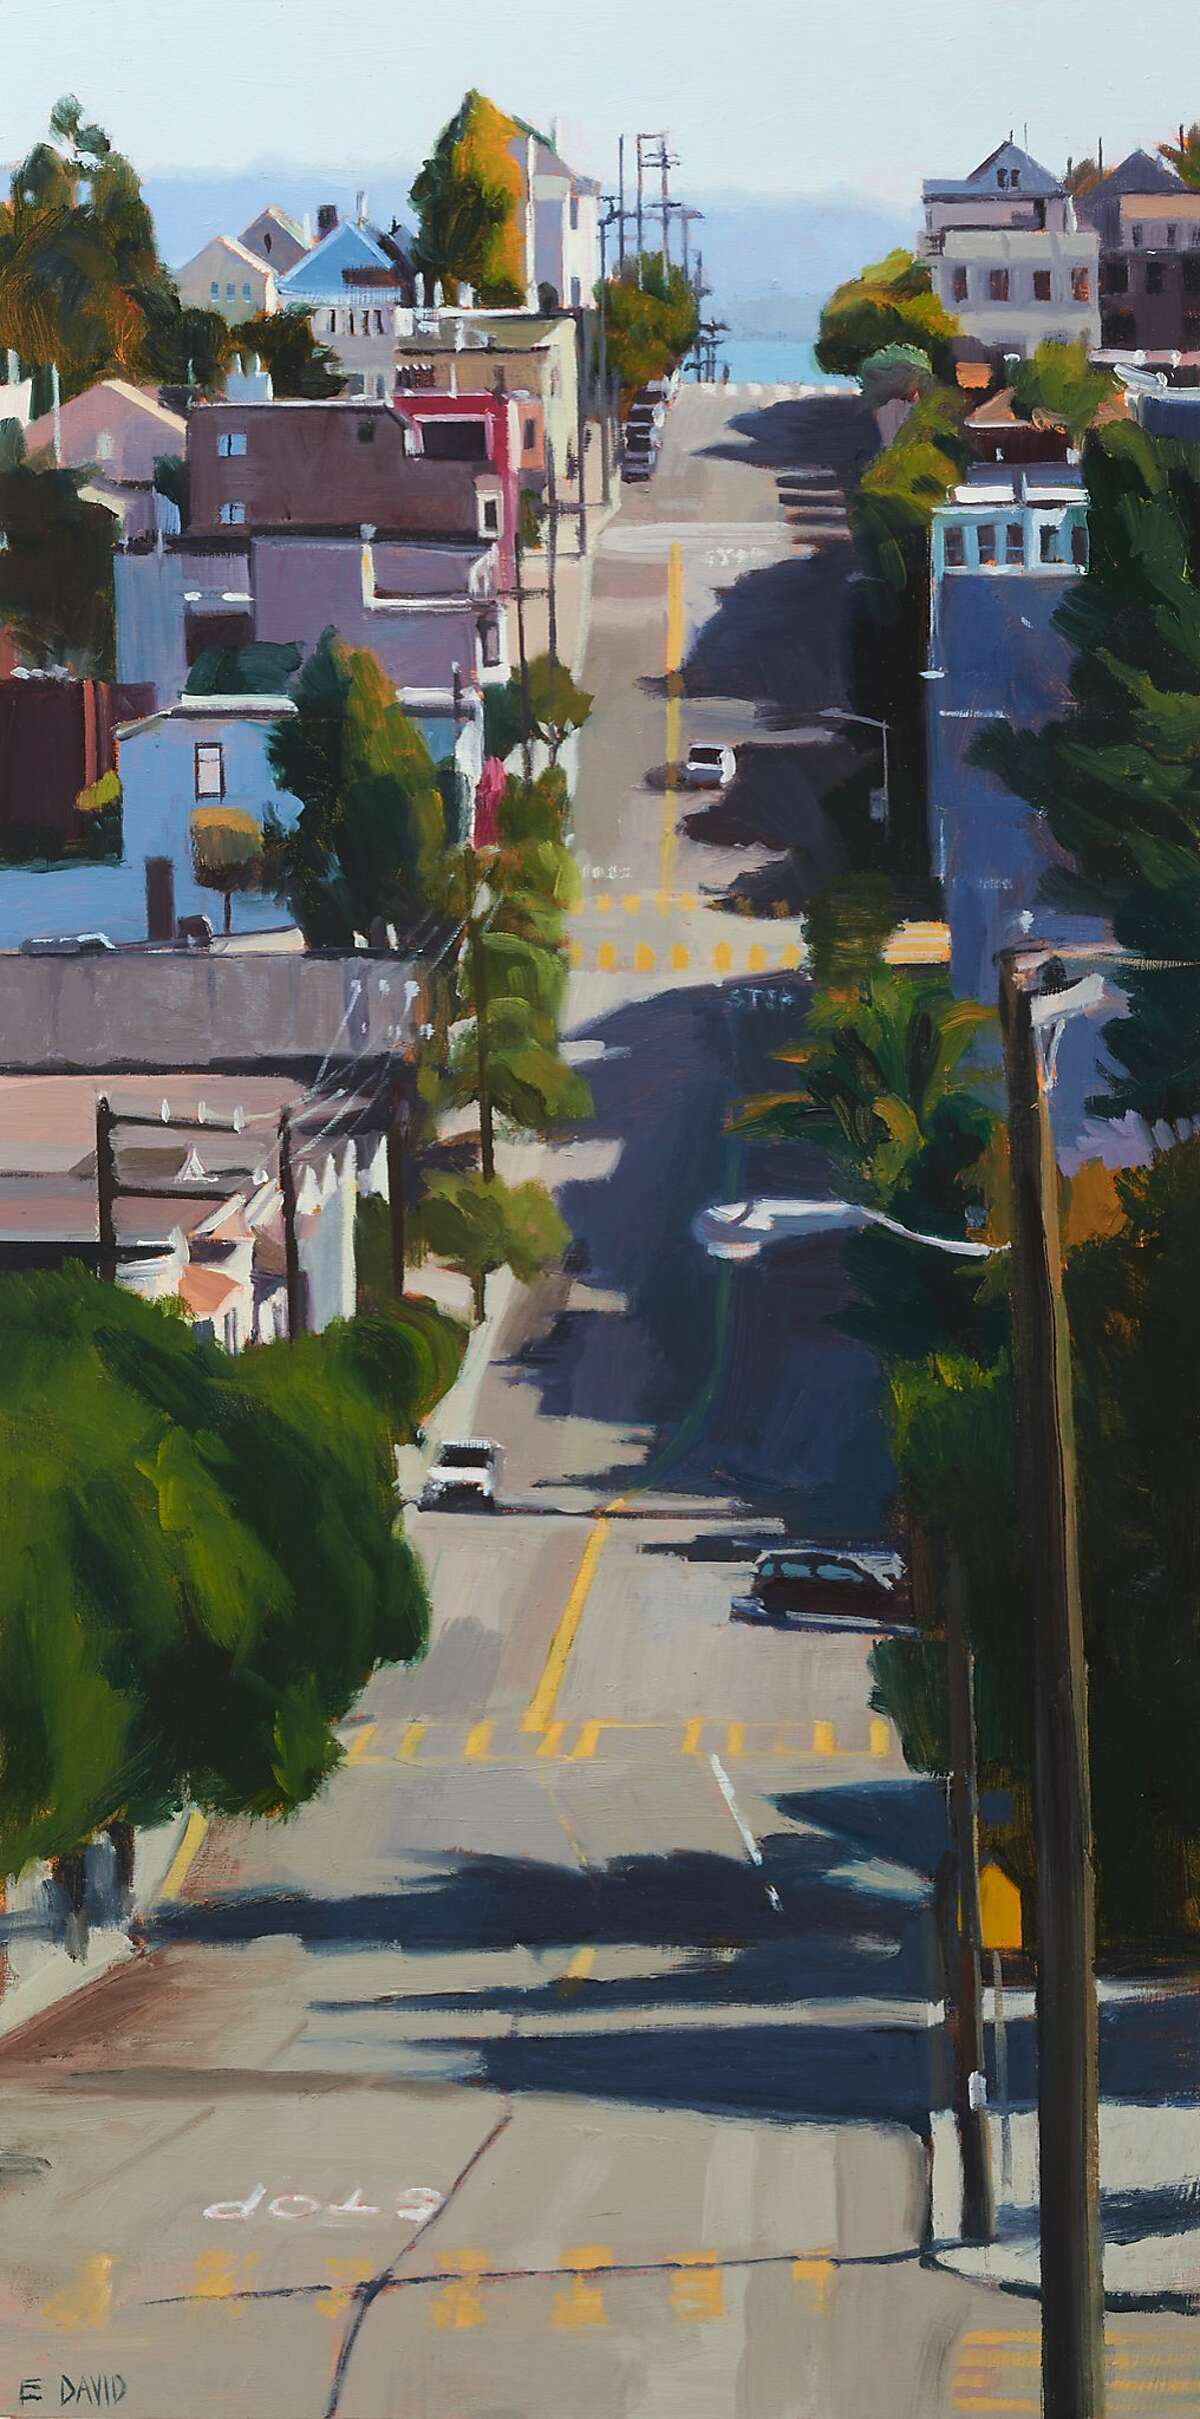 """ED_Ascent HR.jpg Caption: """"Ascent"""" (2015) by Eileen David, oil on panel. 20 x 10 in. Credit: Phocasso / John Wilson White"""